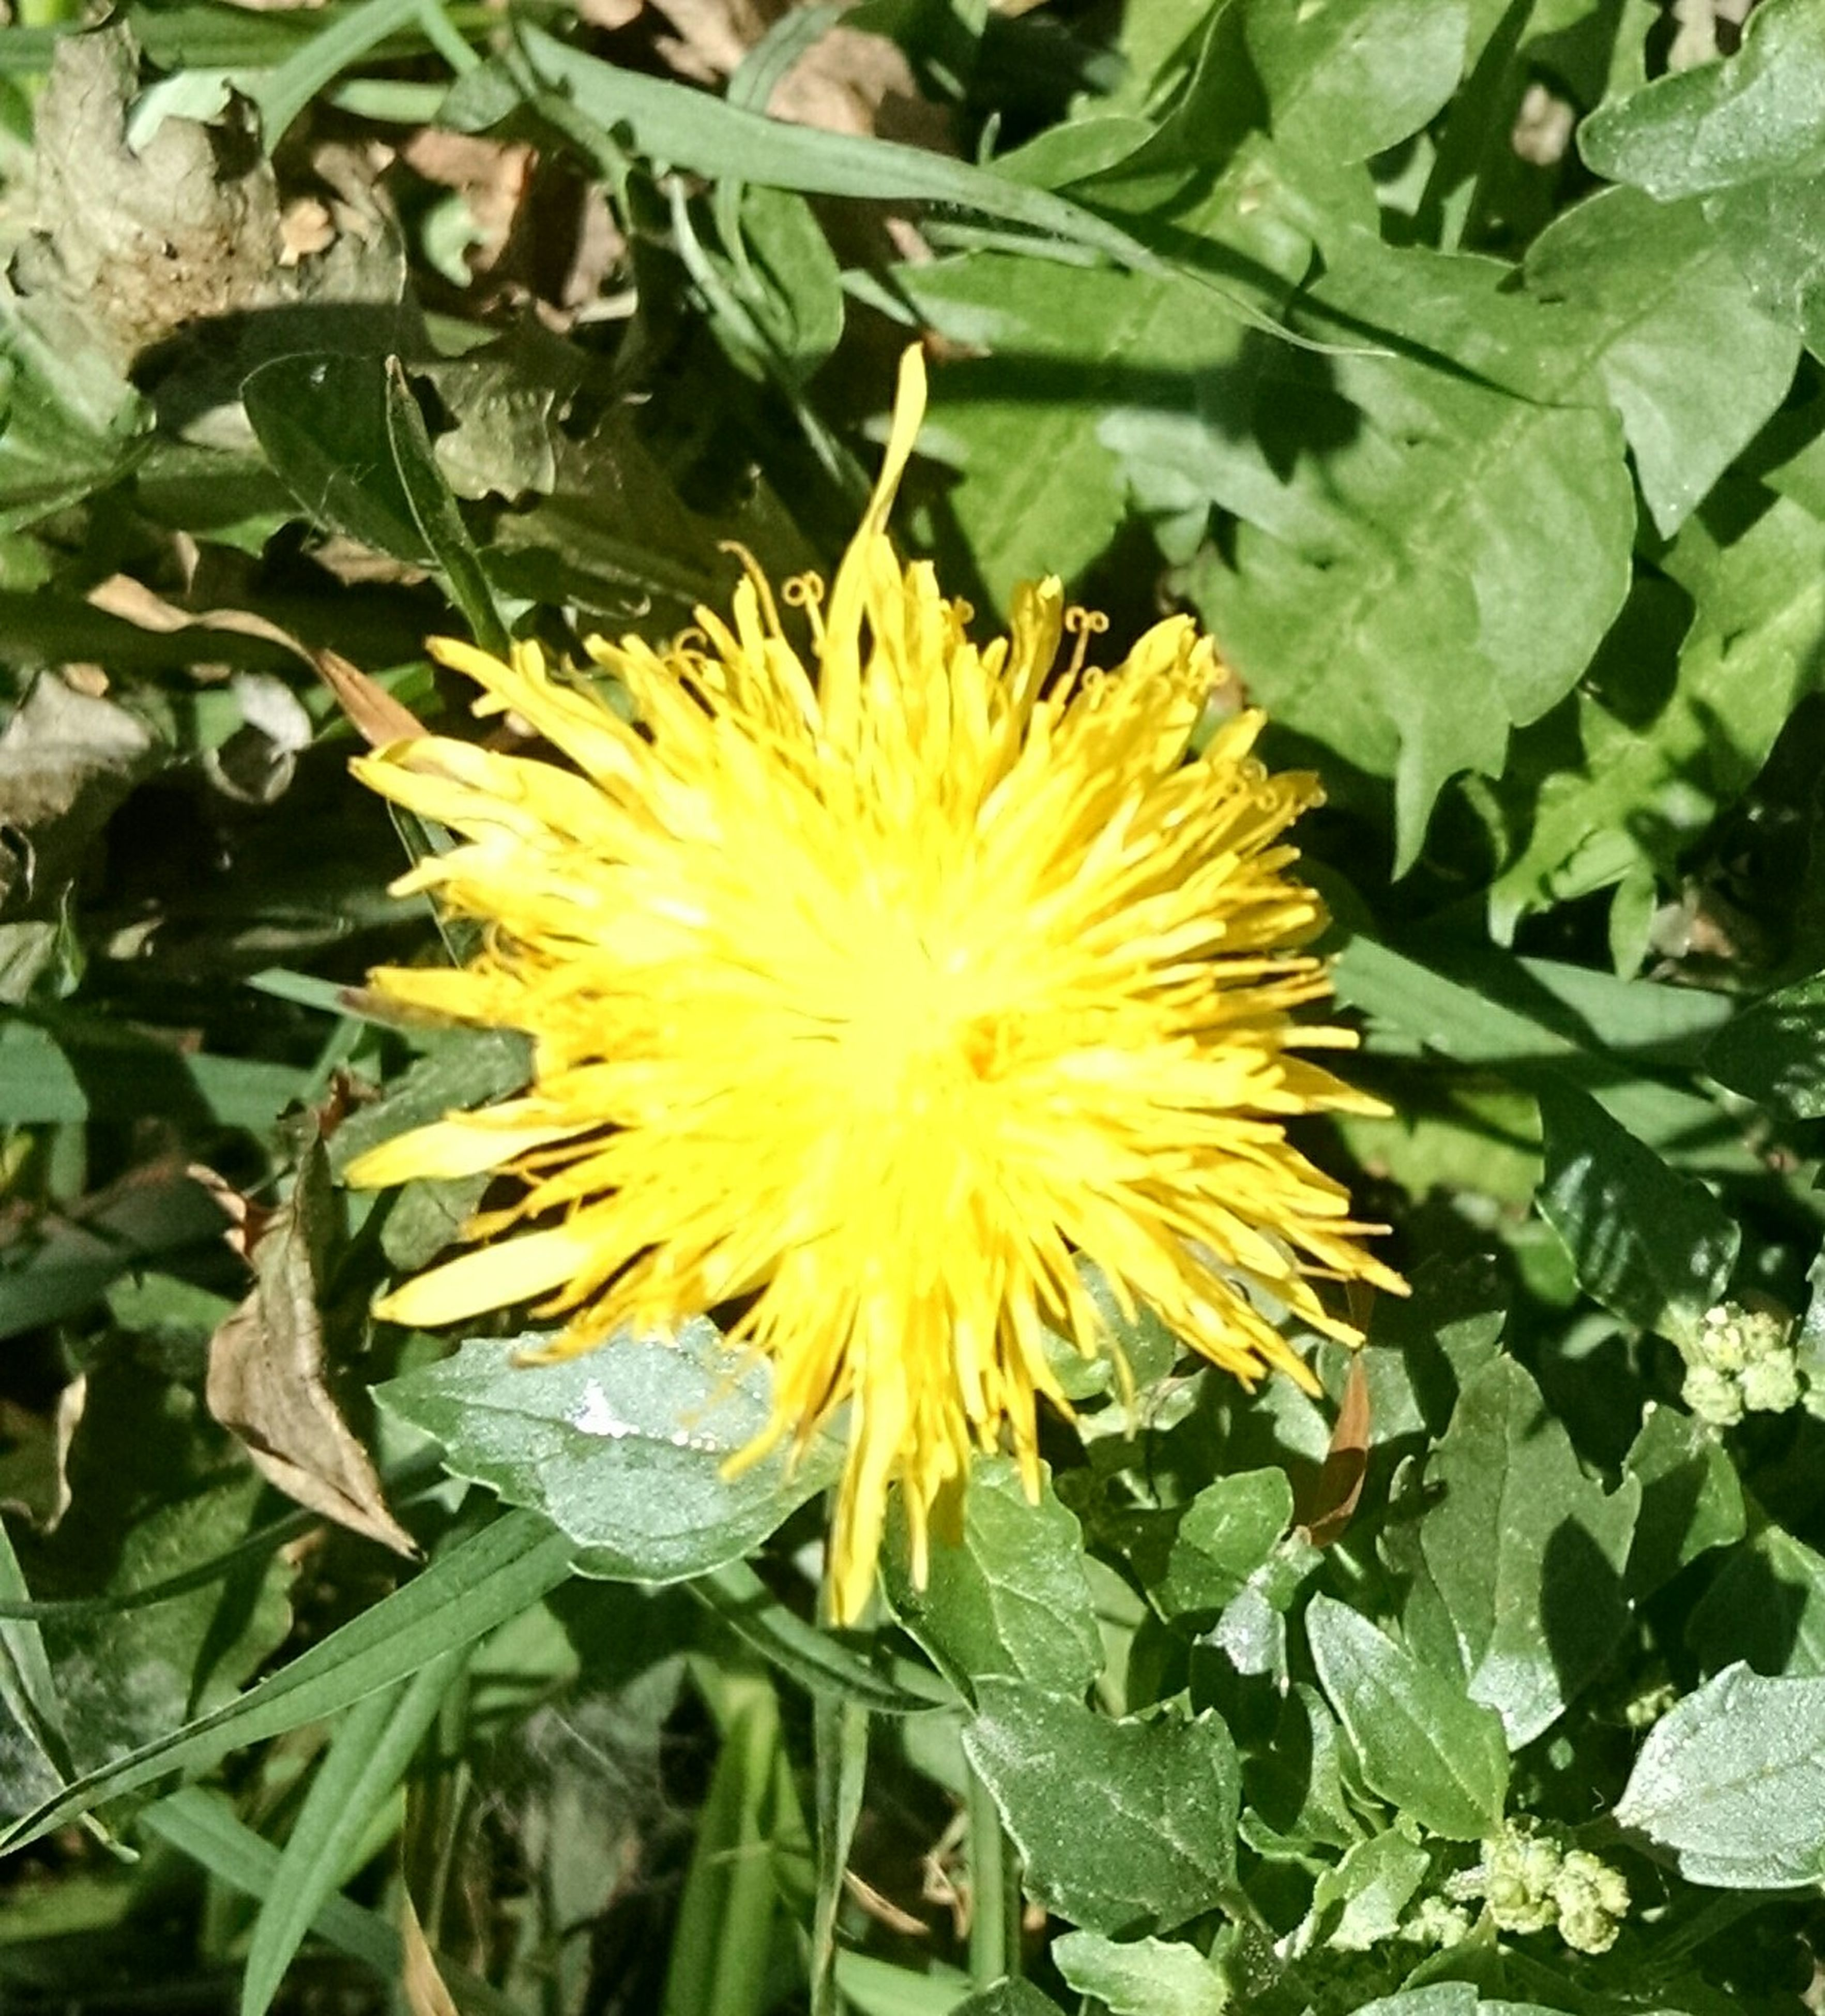 flower, freshness, fragility, flower head, petal, growth, single flower, leaf, beauty in nature, plant, yellow, blooming, nature, green color, high angle view, close-up, pollen, in bloom, day, outdoors